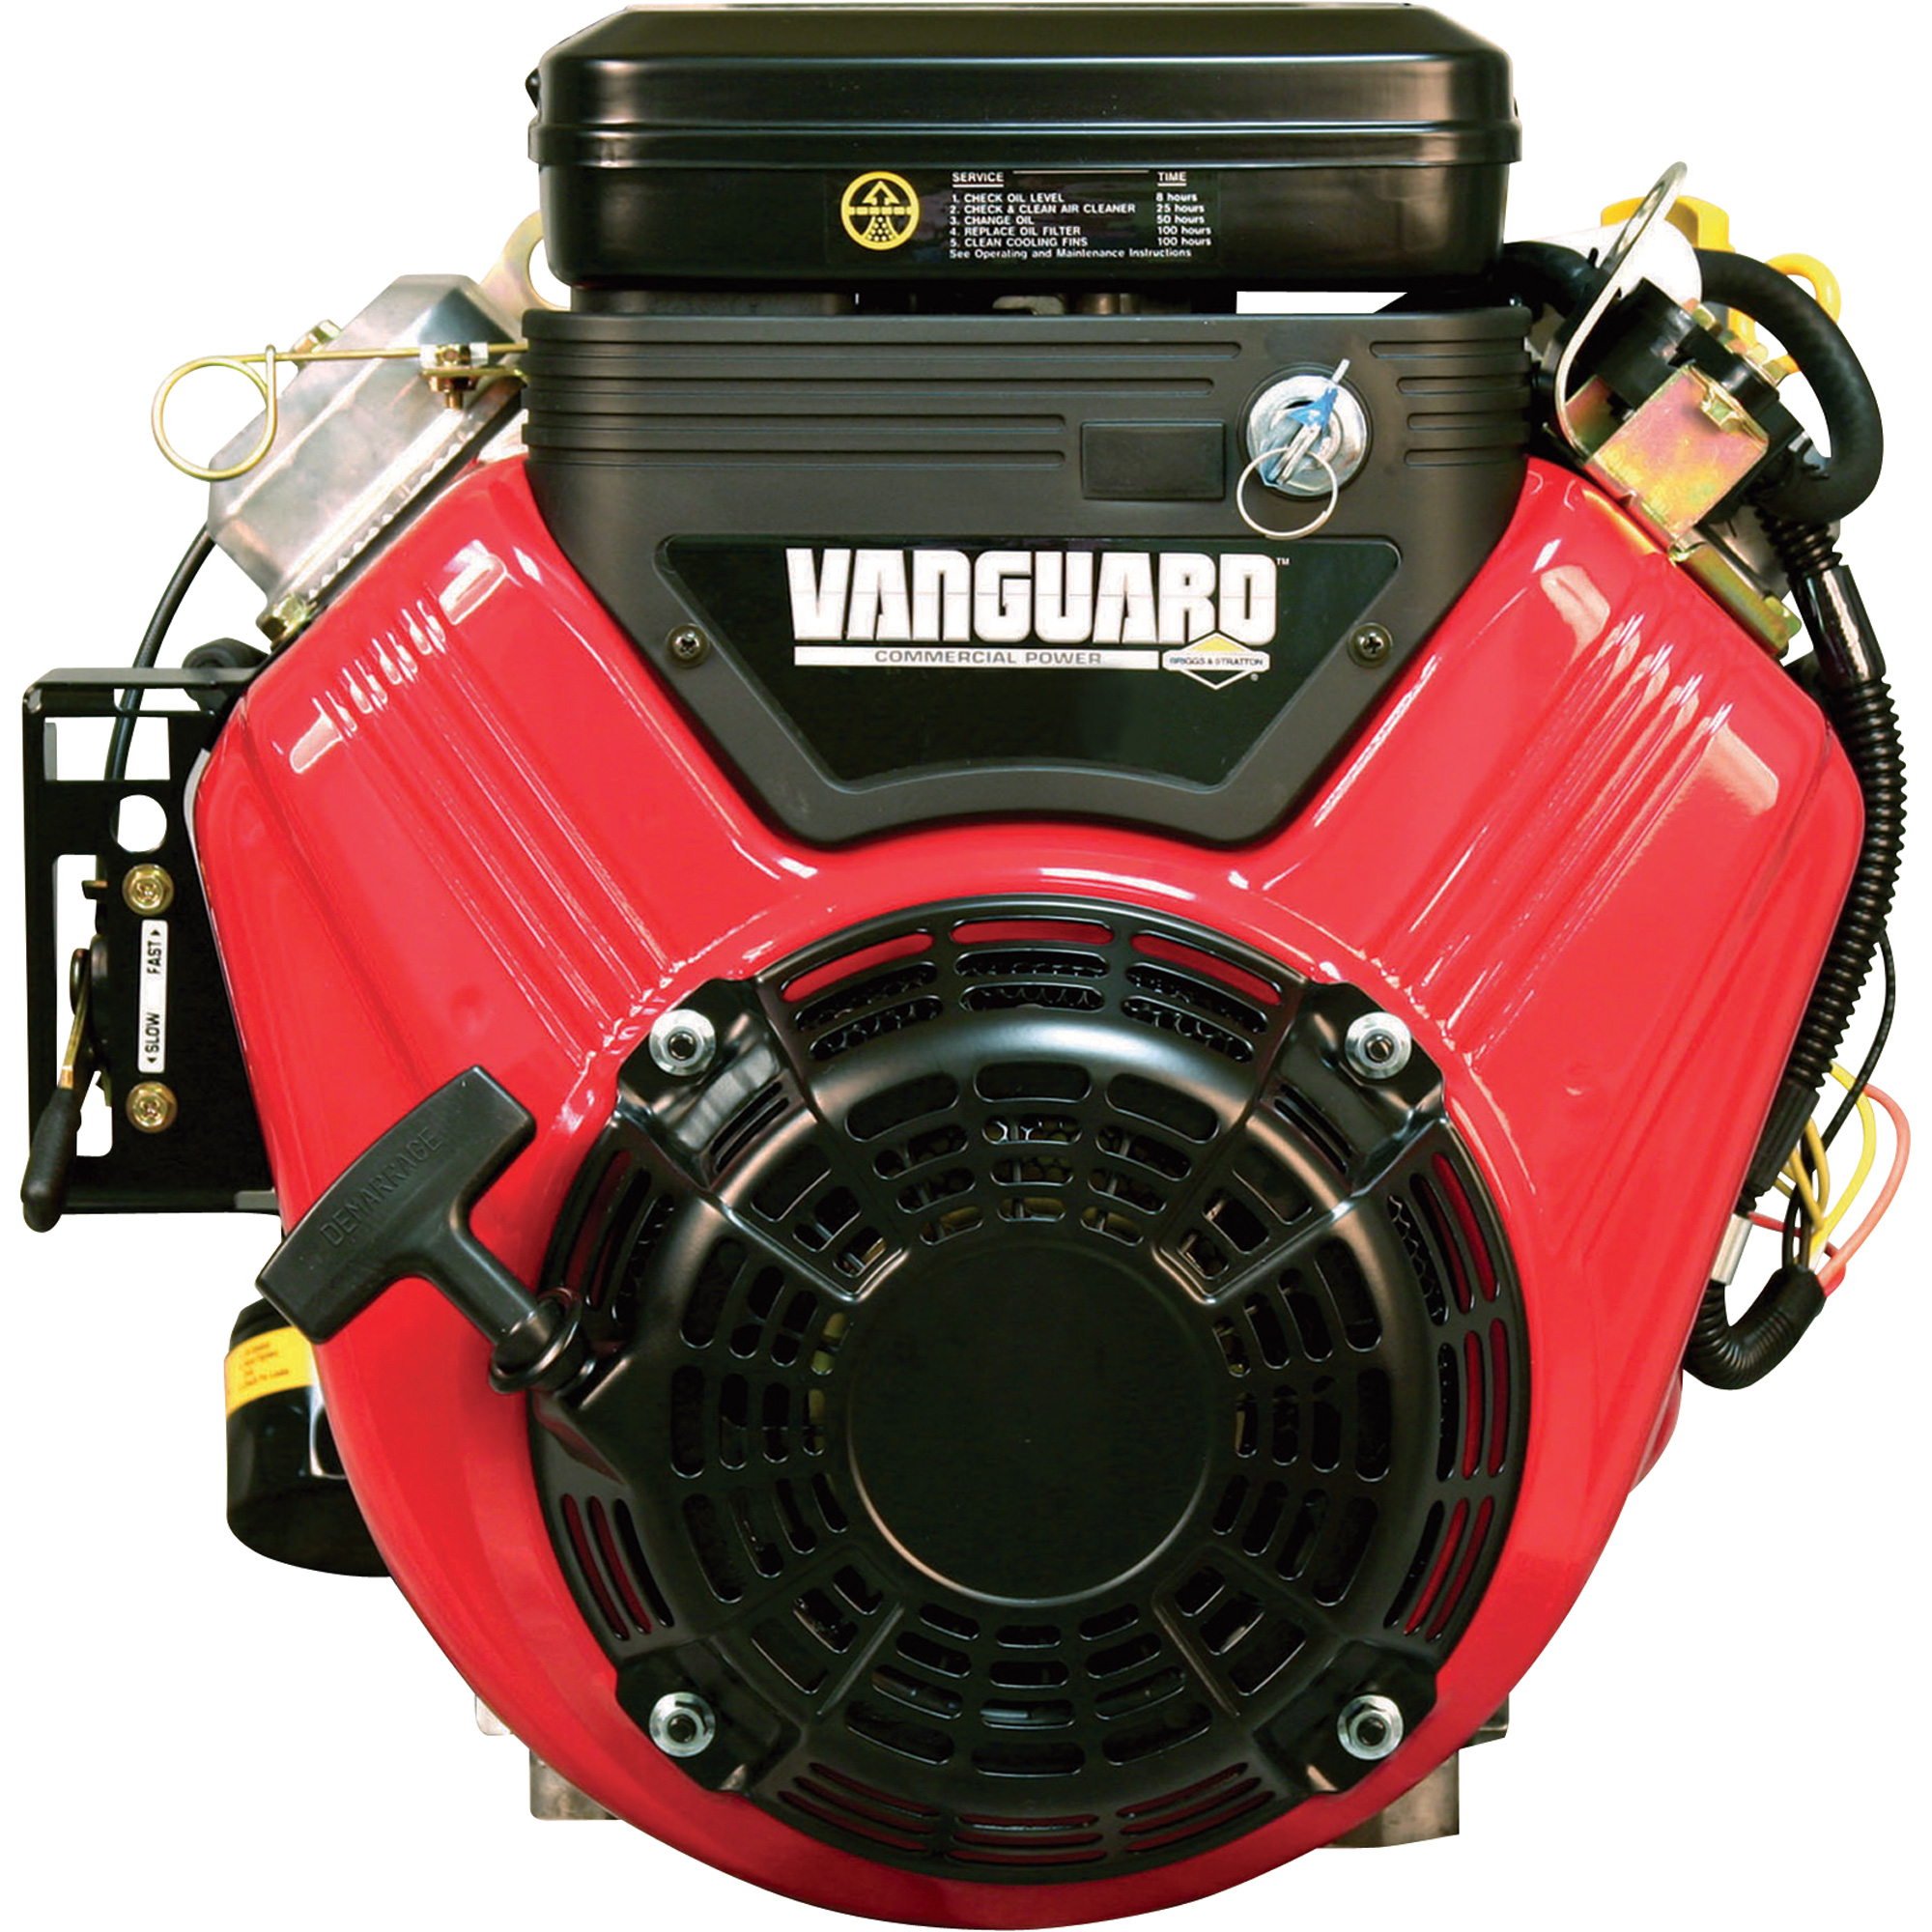 Vanguard 20 Hp V Twin Home Design Ideas Wiring Diagram 3 Briggs Stratton Horizontal Engine 479cc 1in X